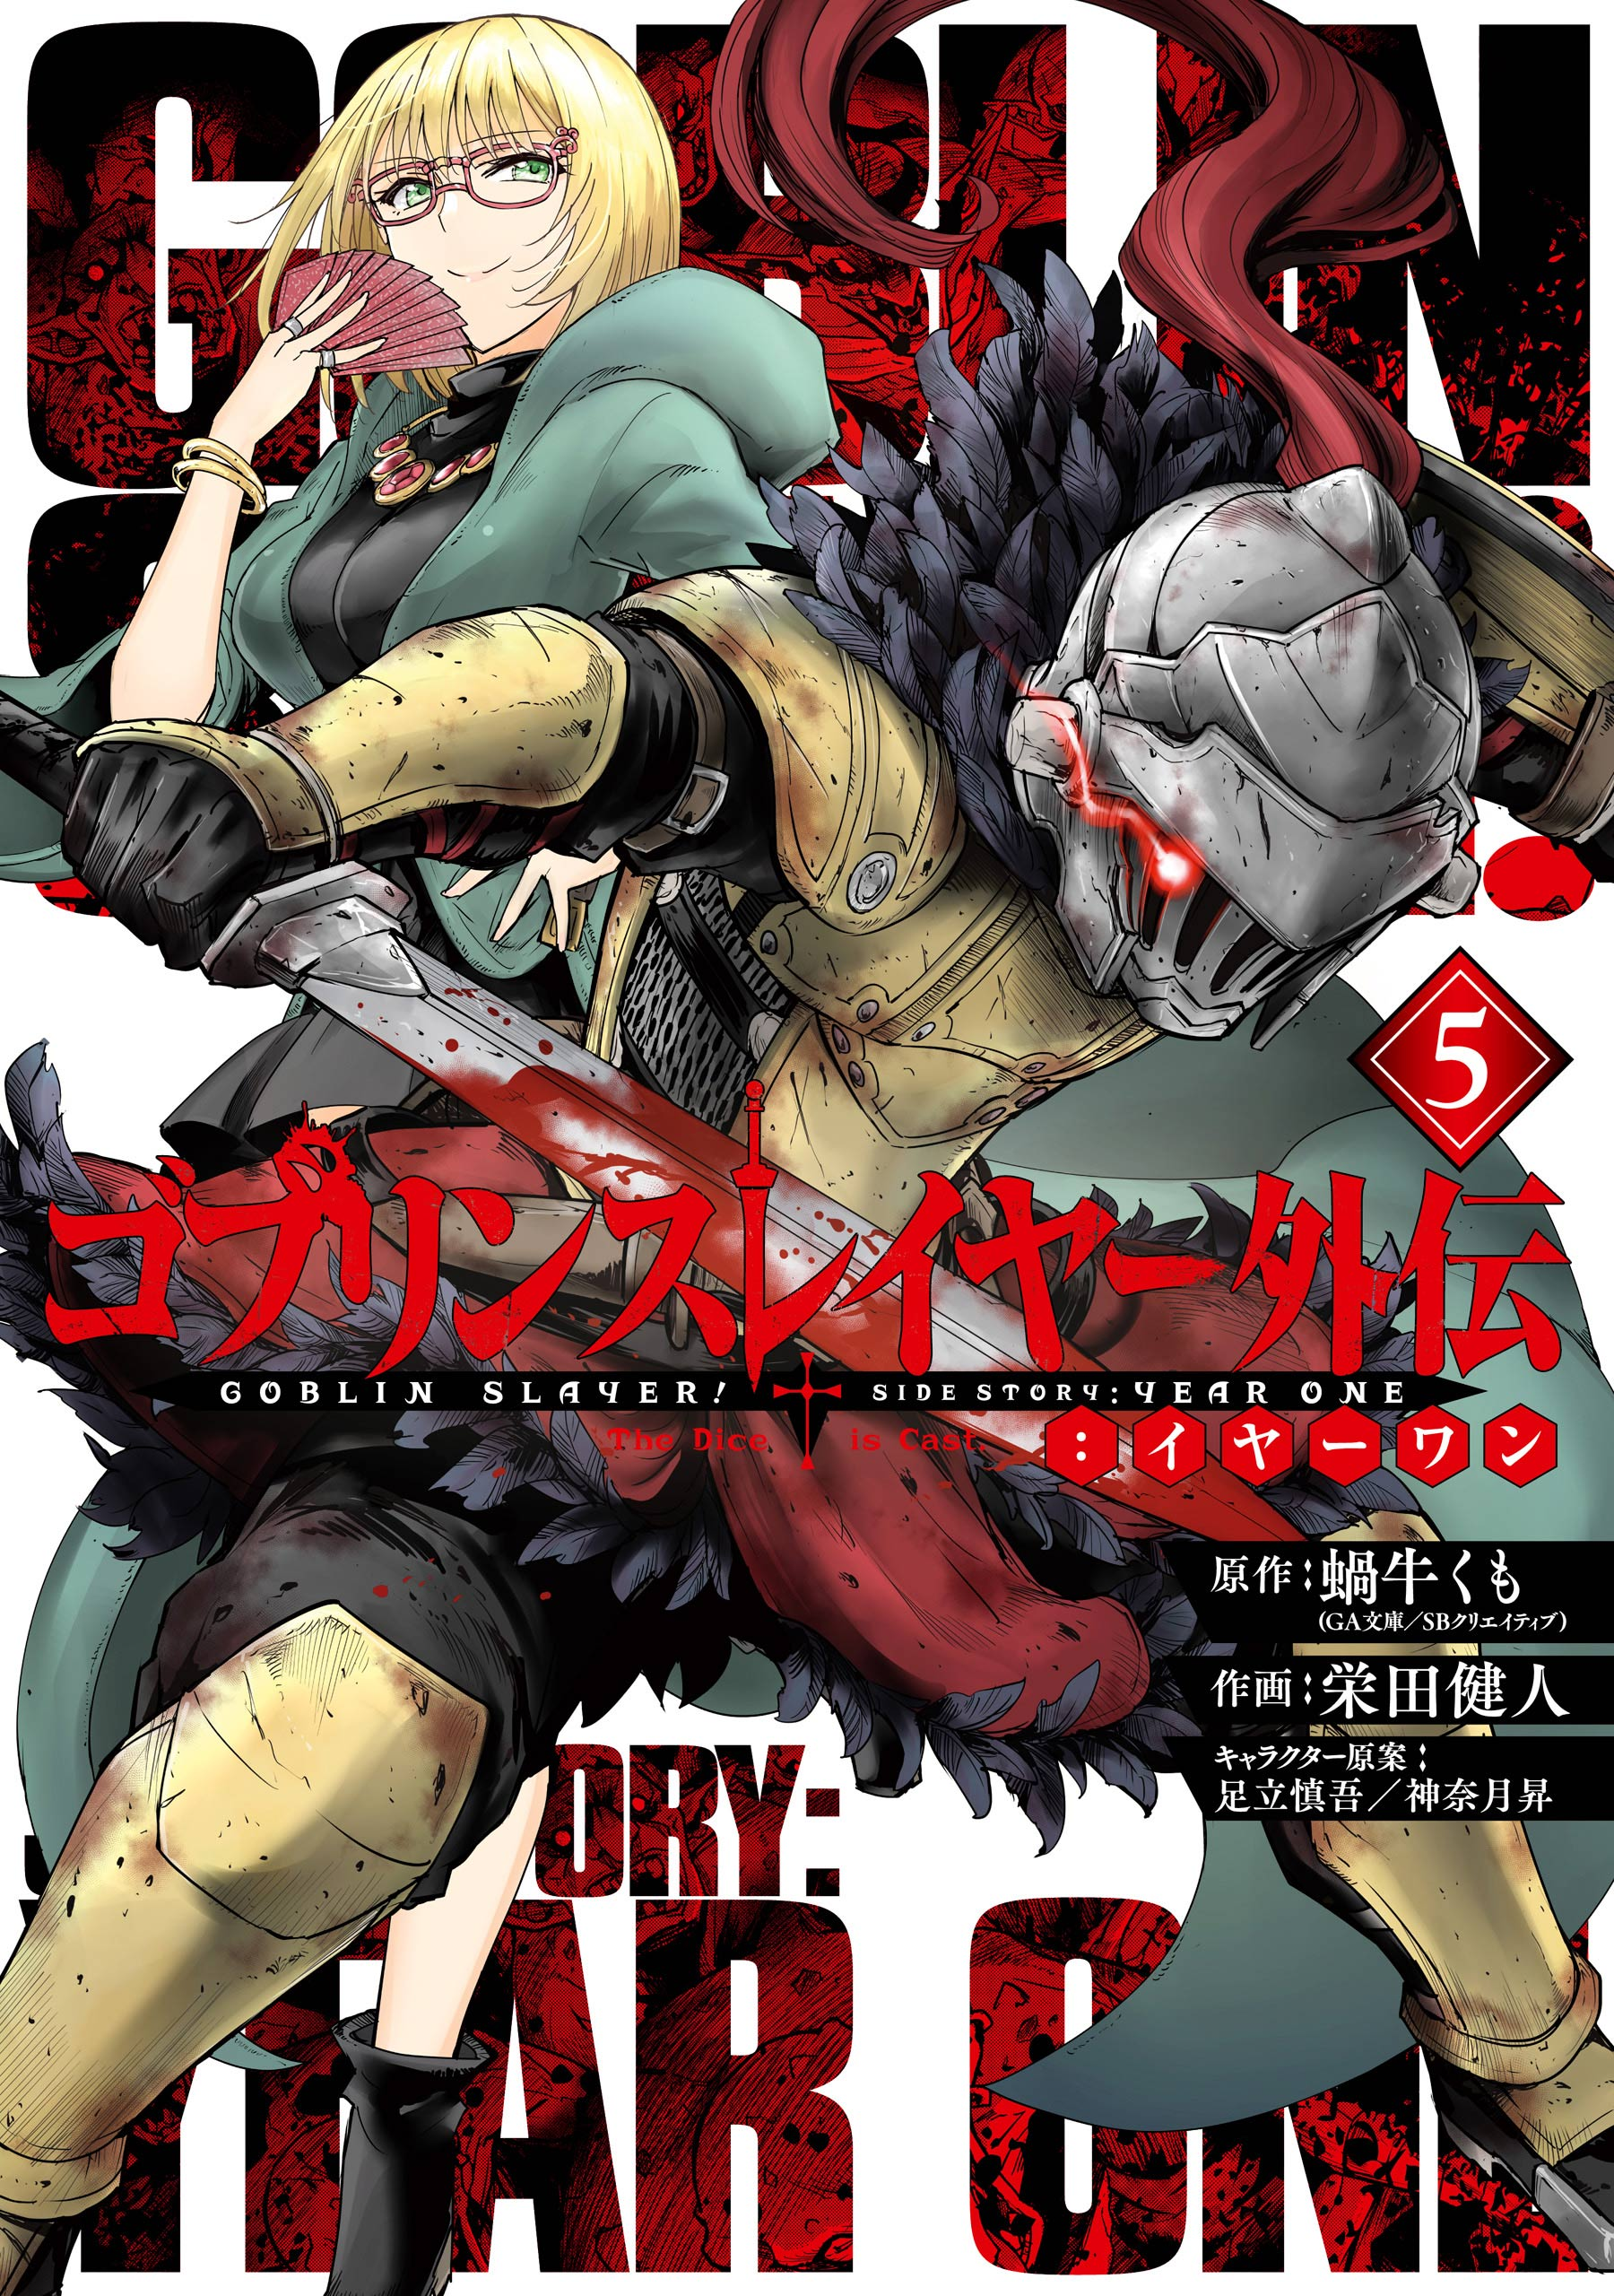 Goblin Slayer Side Story Year One